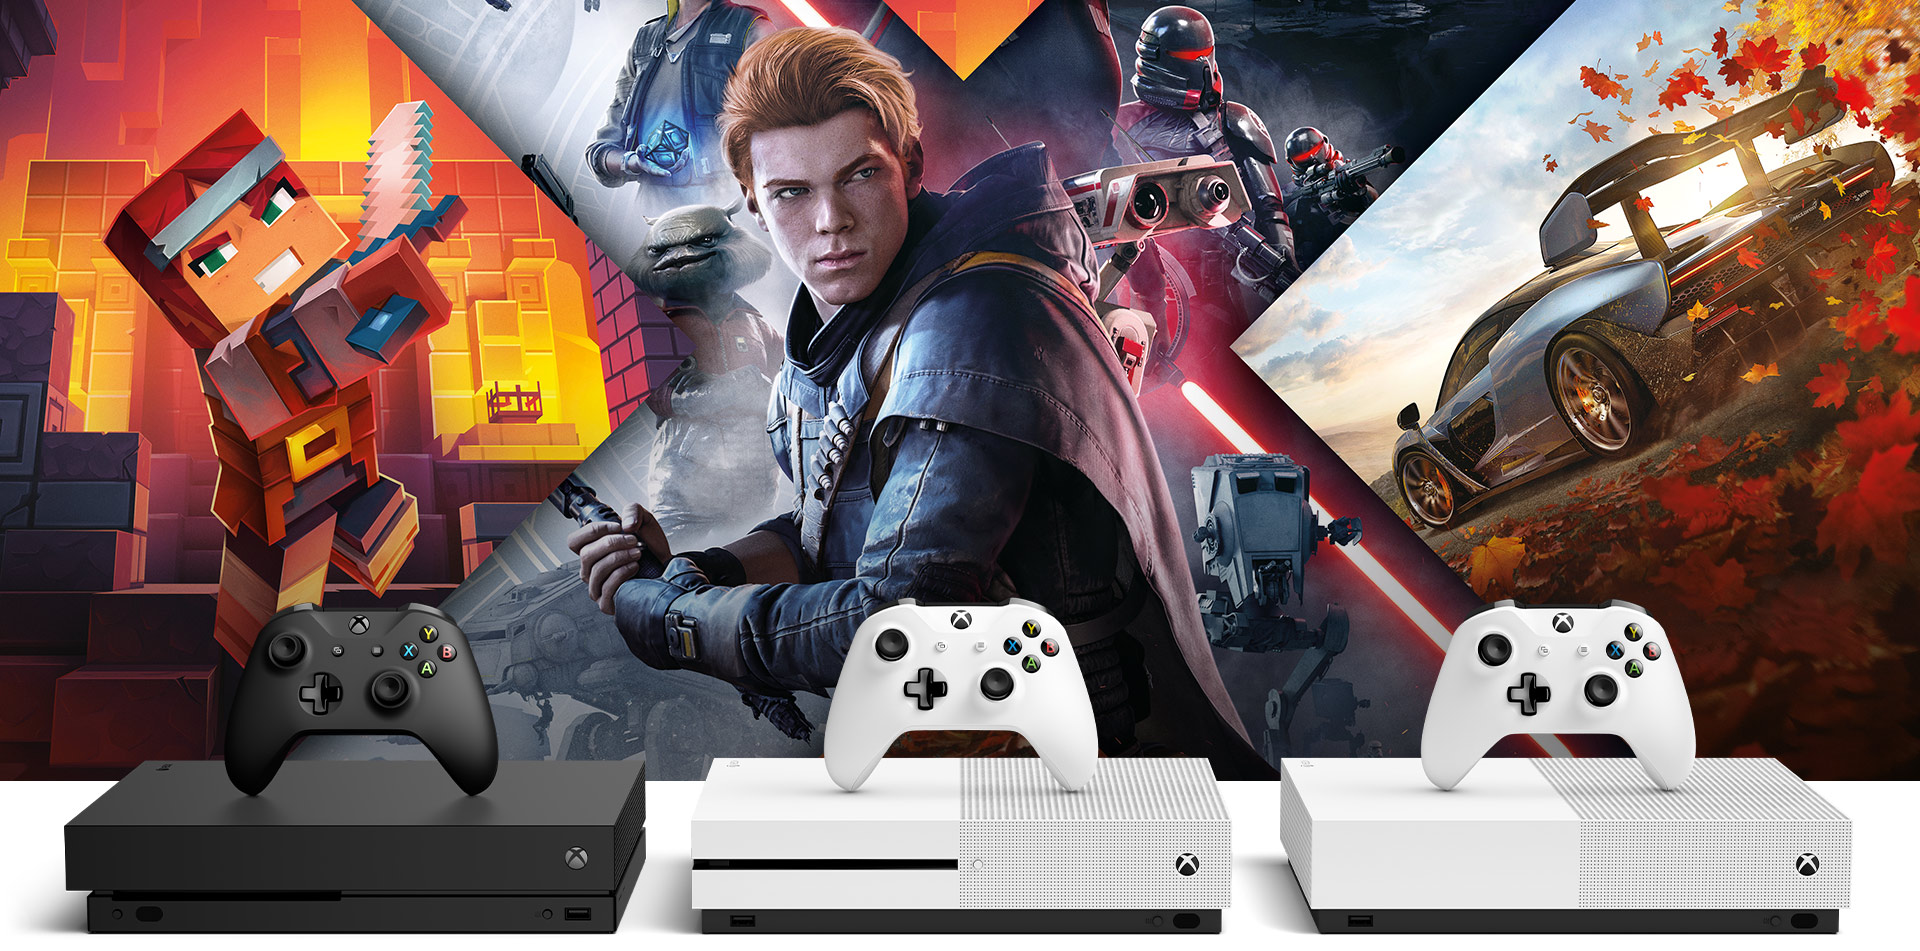 Xbox One X, Xbox One S and Xbox One S All-Digital in front of Forza, Minecraft, and Star Wars art